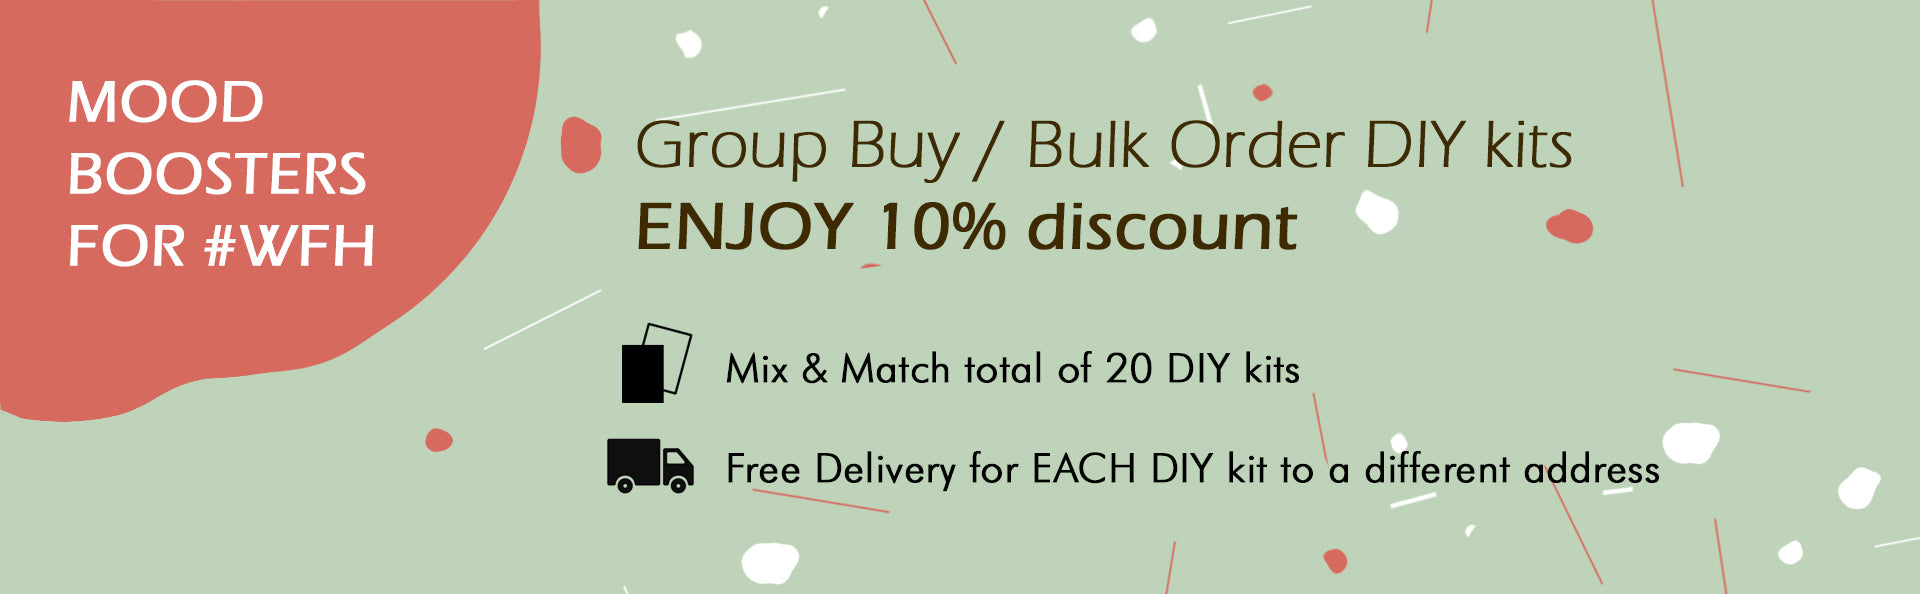 group buy bulk purchase diy kit